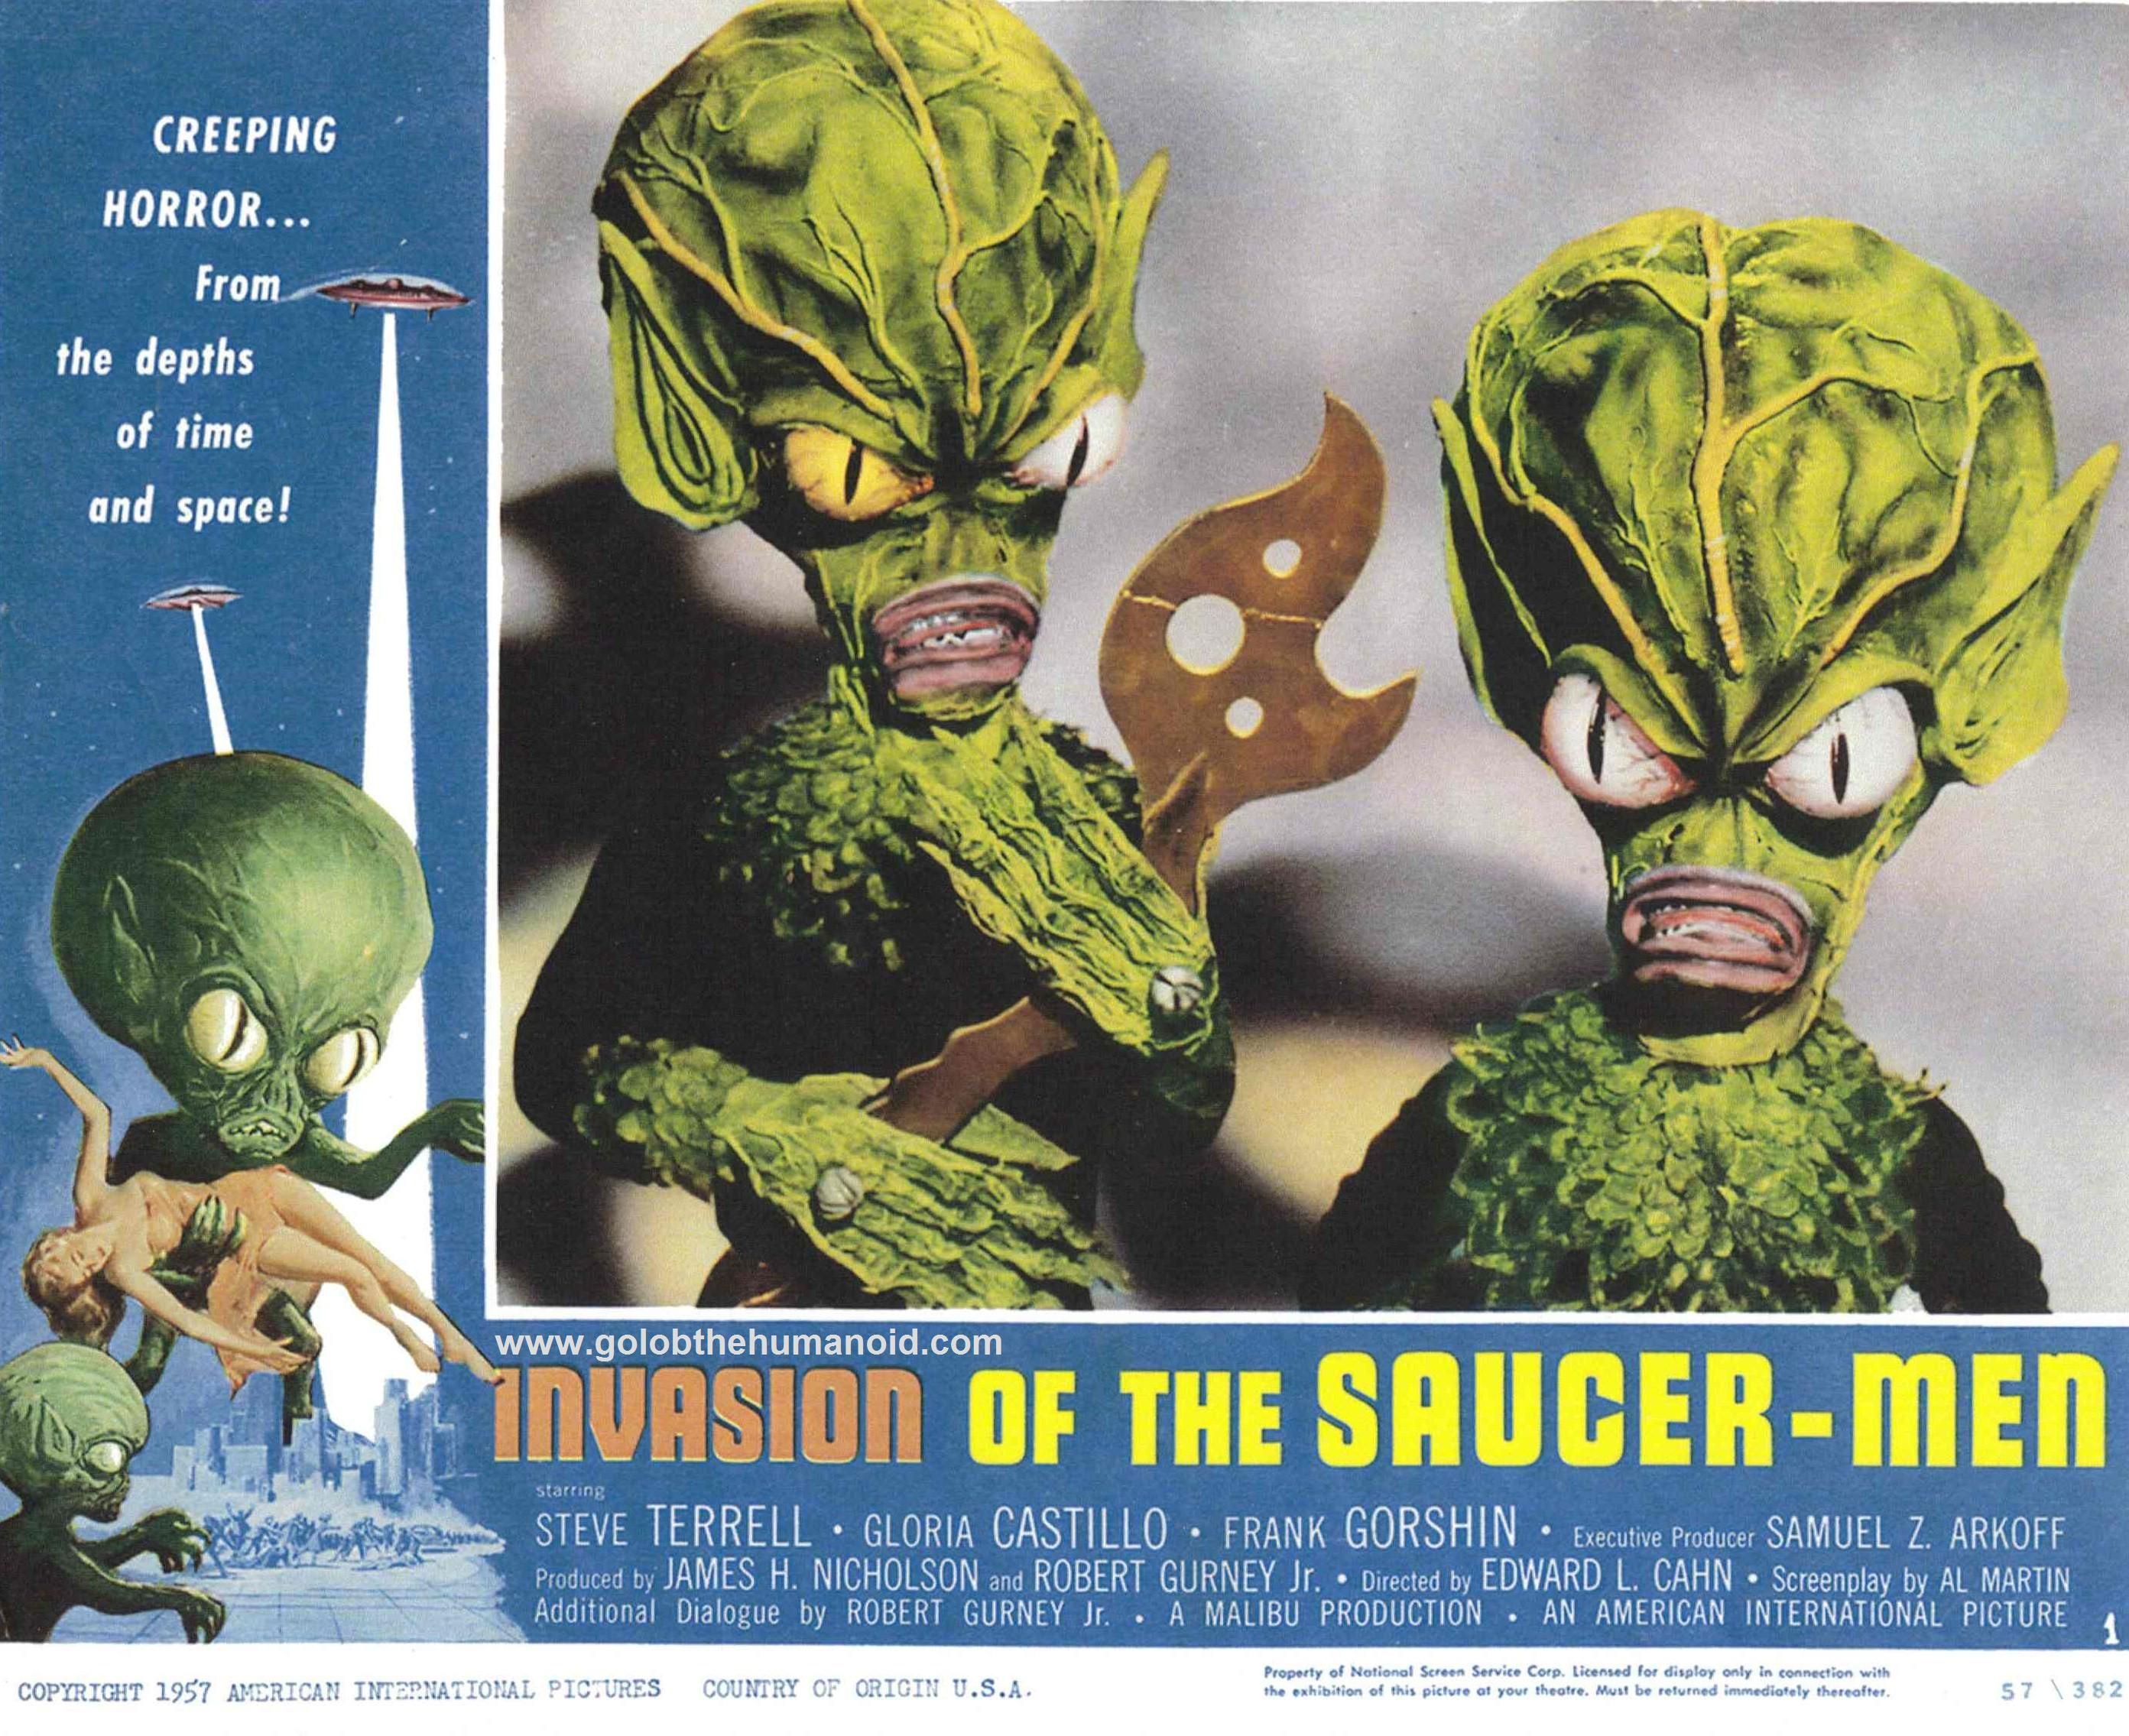 Invasion of the saucer men movie are not